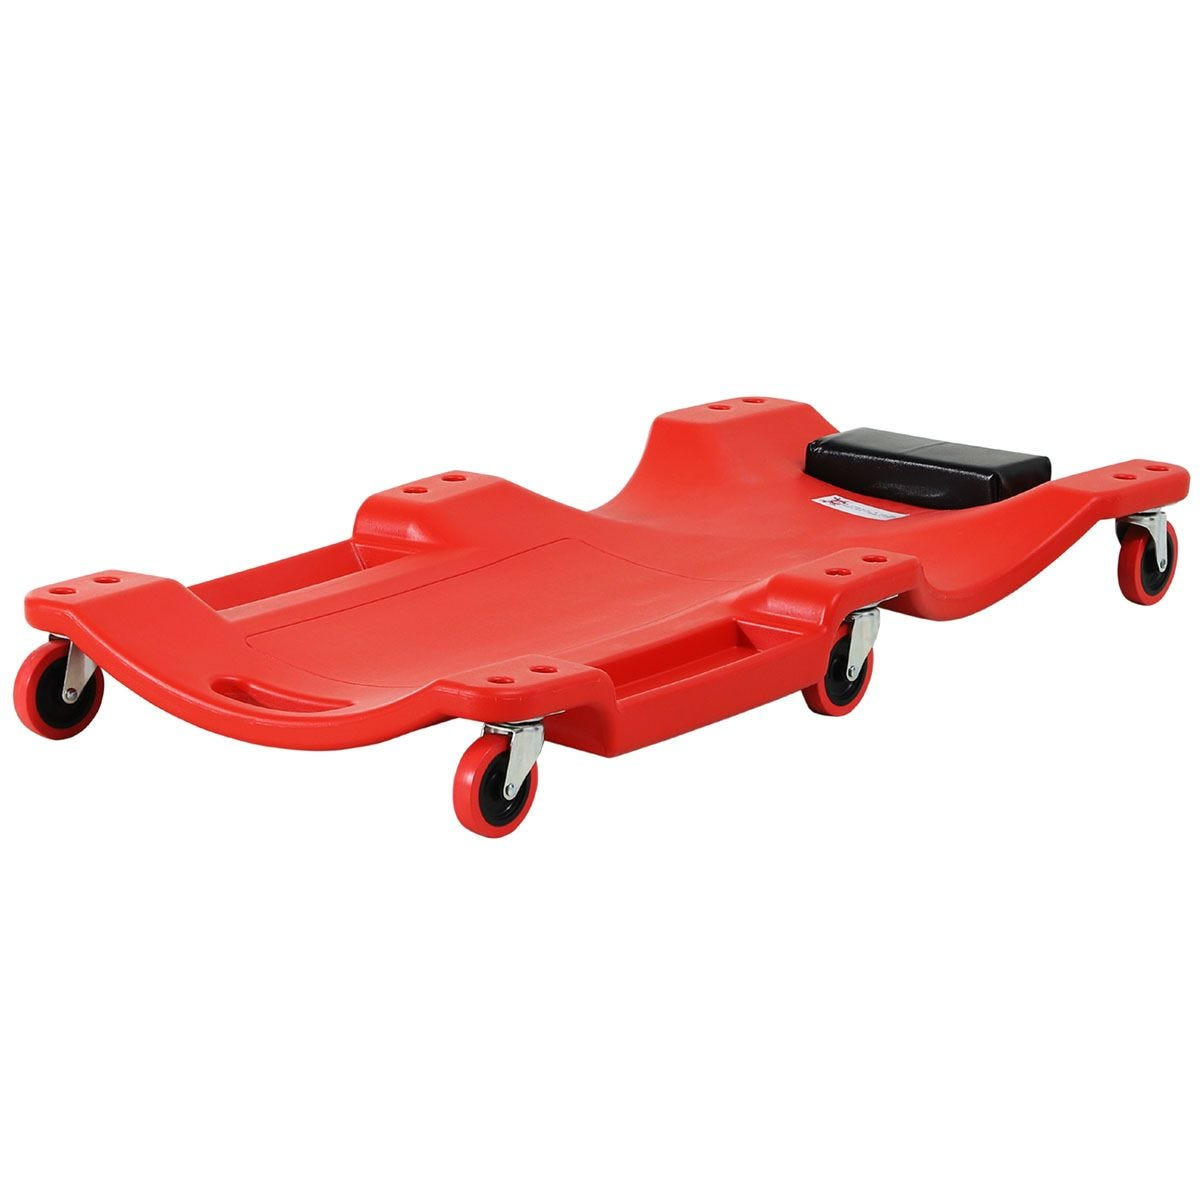 Durhand Mechanic Vehicle Creeper with Wheels under Car Repair Portable Headrest Tray - Red